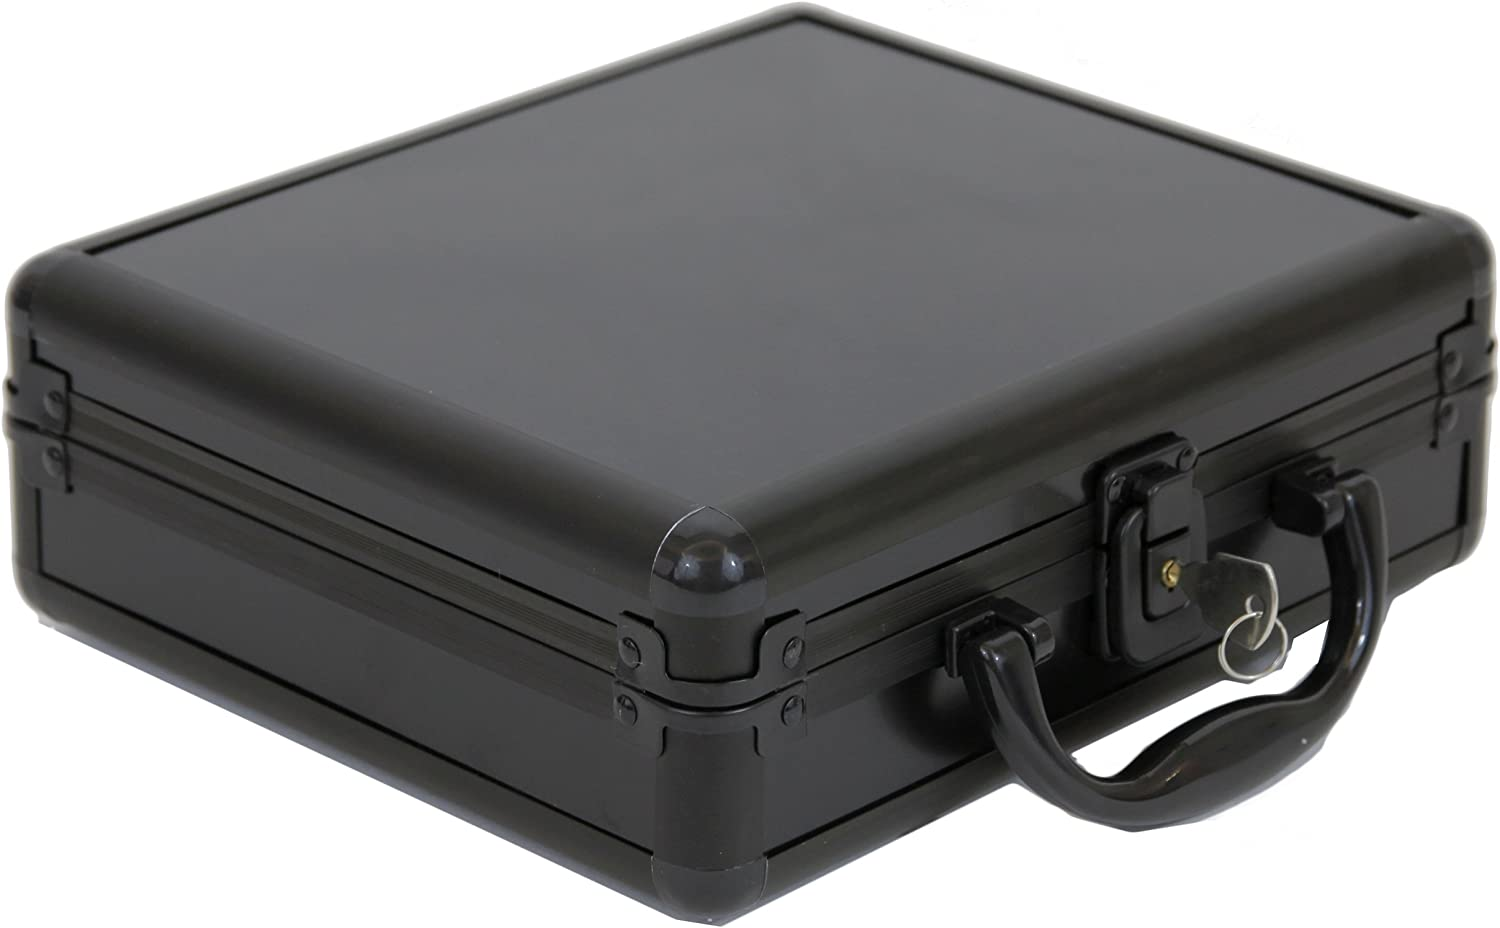 Watch Case for Collectors Briefcase Mesa Mall Store Aluminum Ha Safe Ranking TOP10 Black